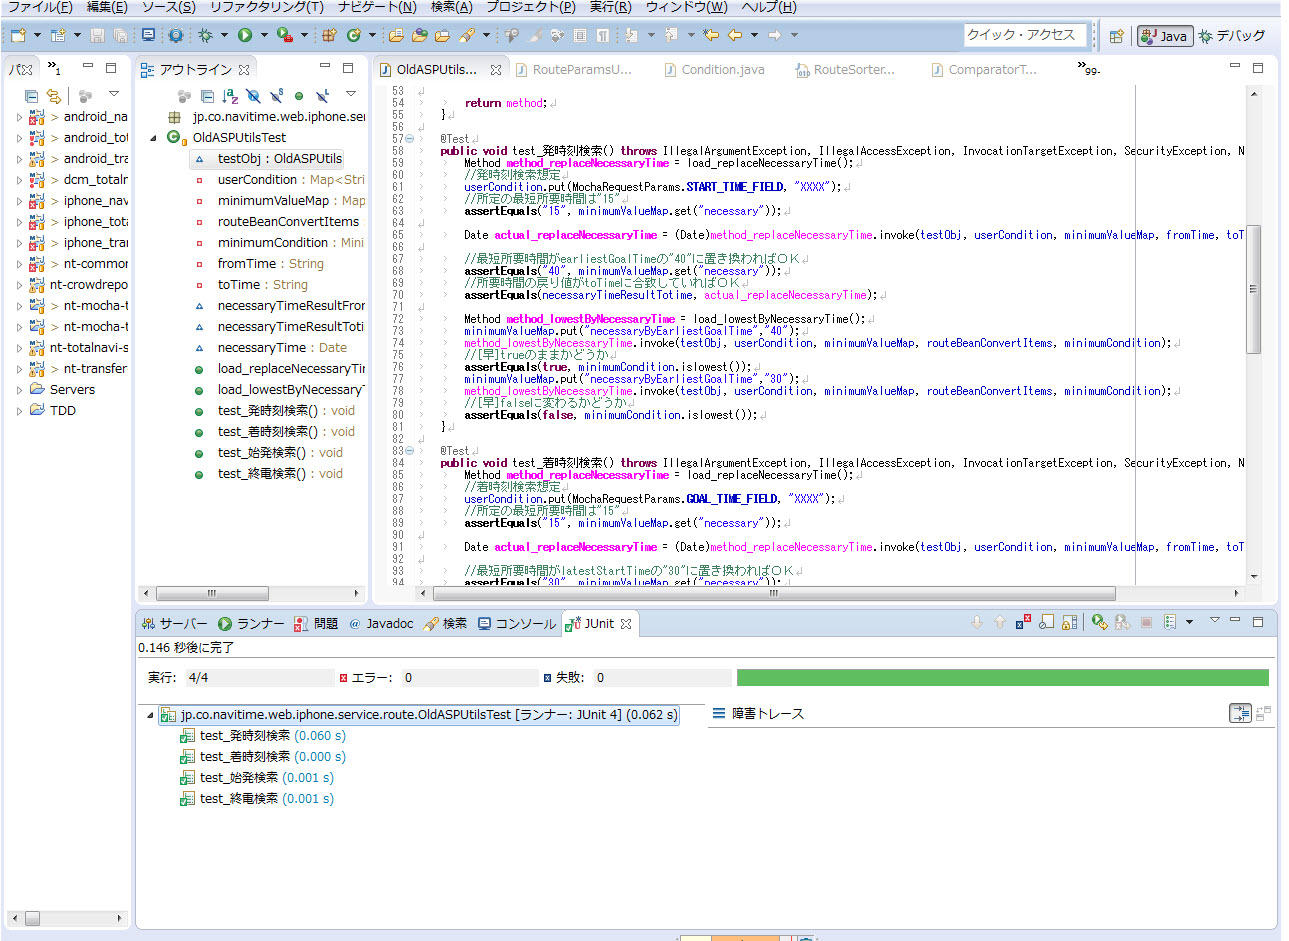 Screen shot of TDD in Eclipse